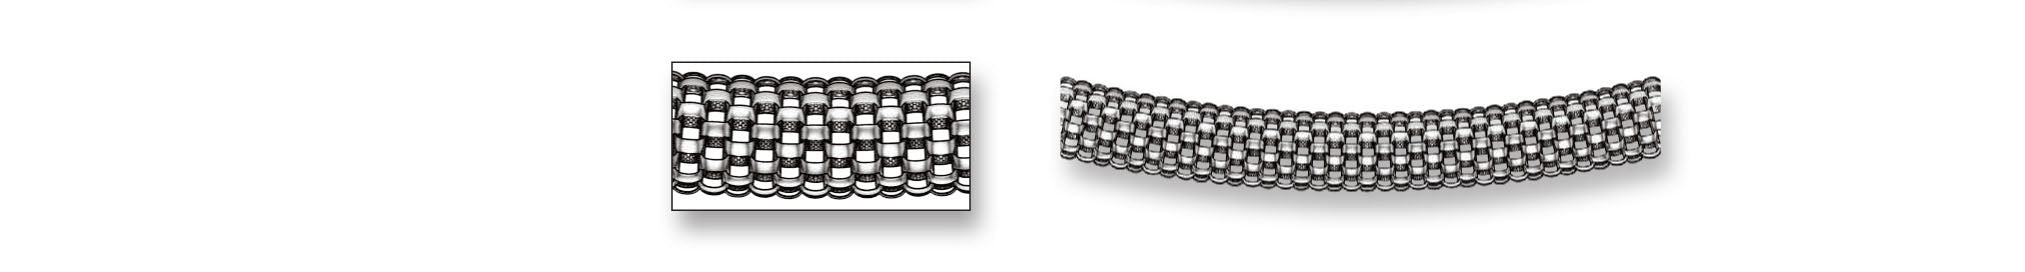 Chains - Mesh LInk Chain Image